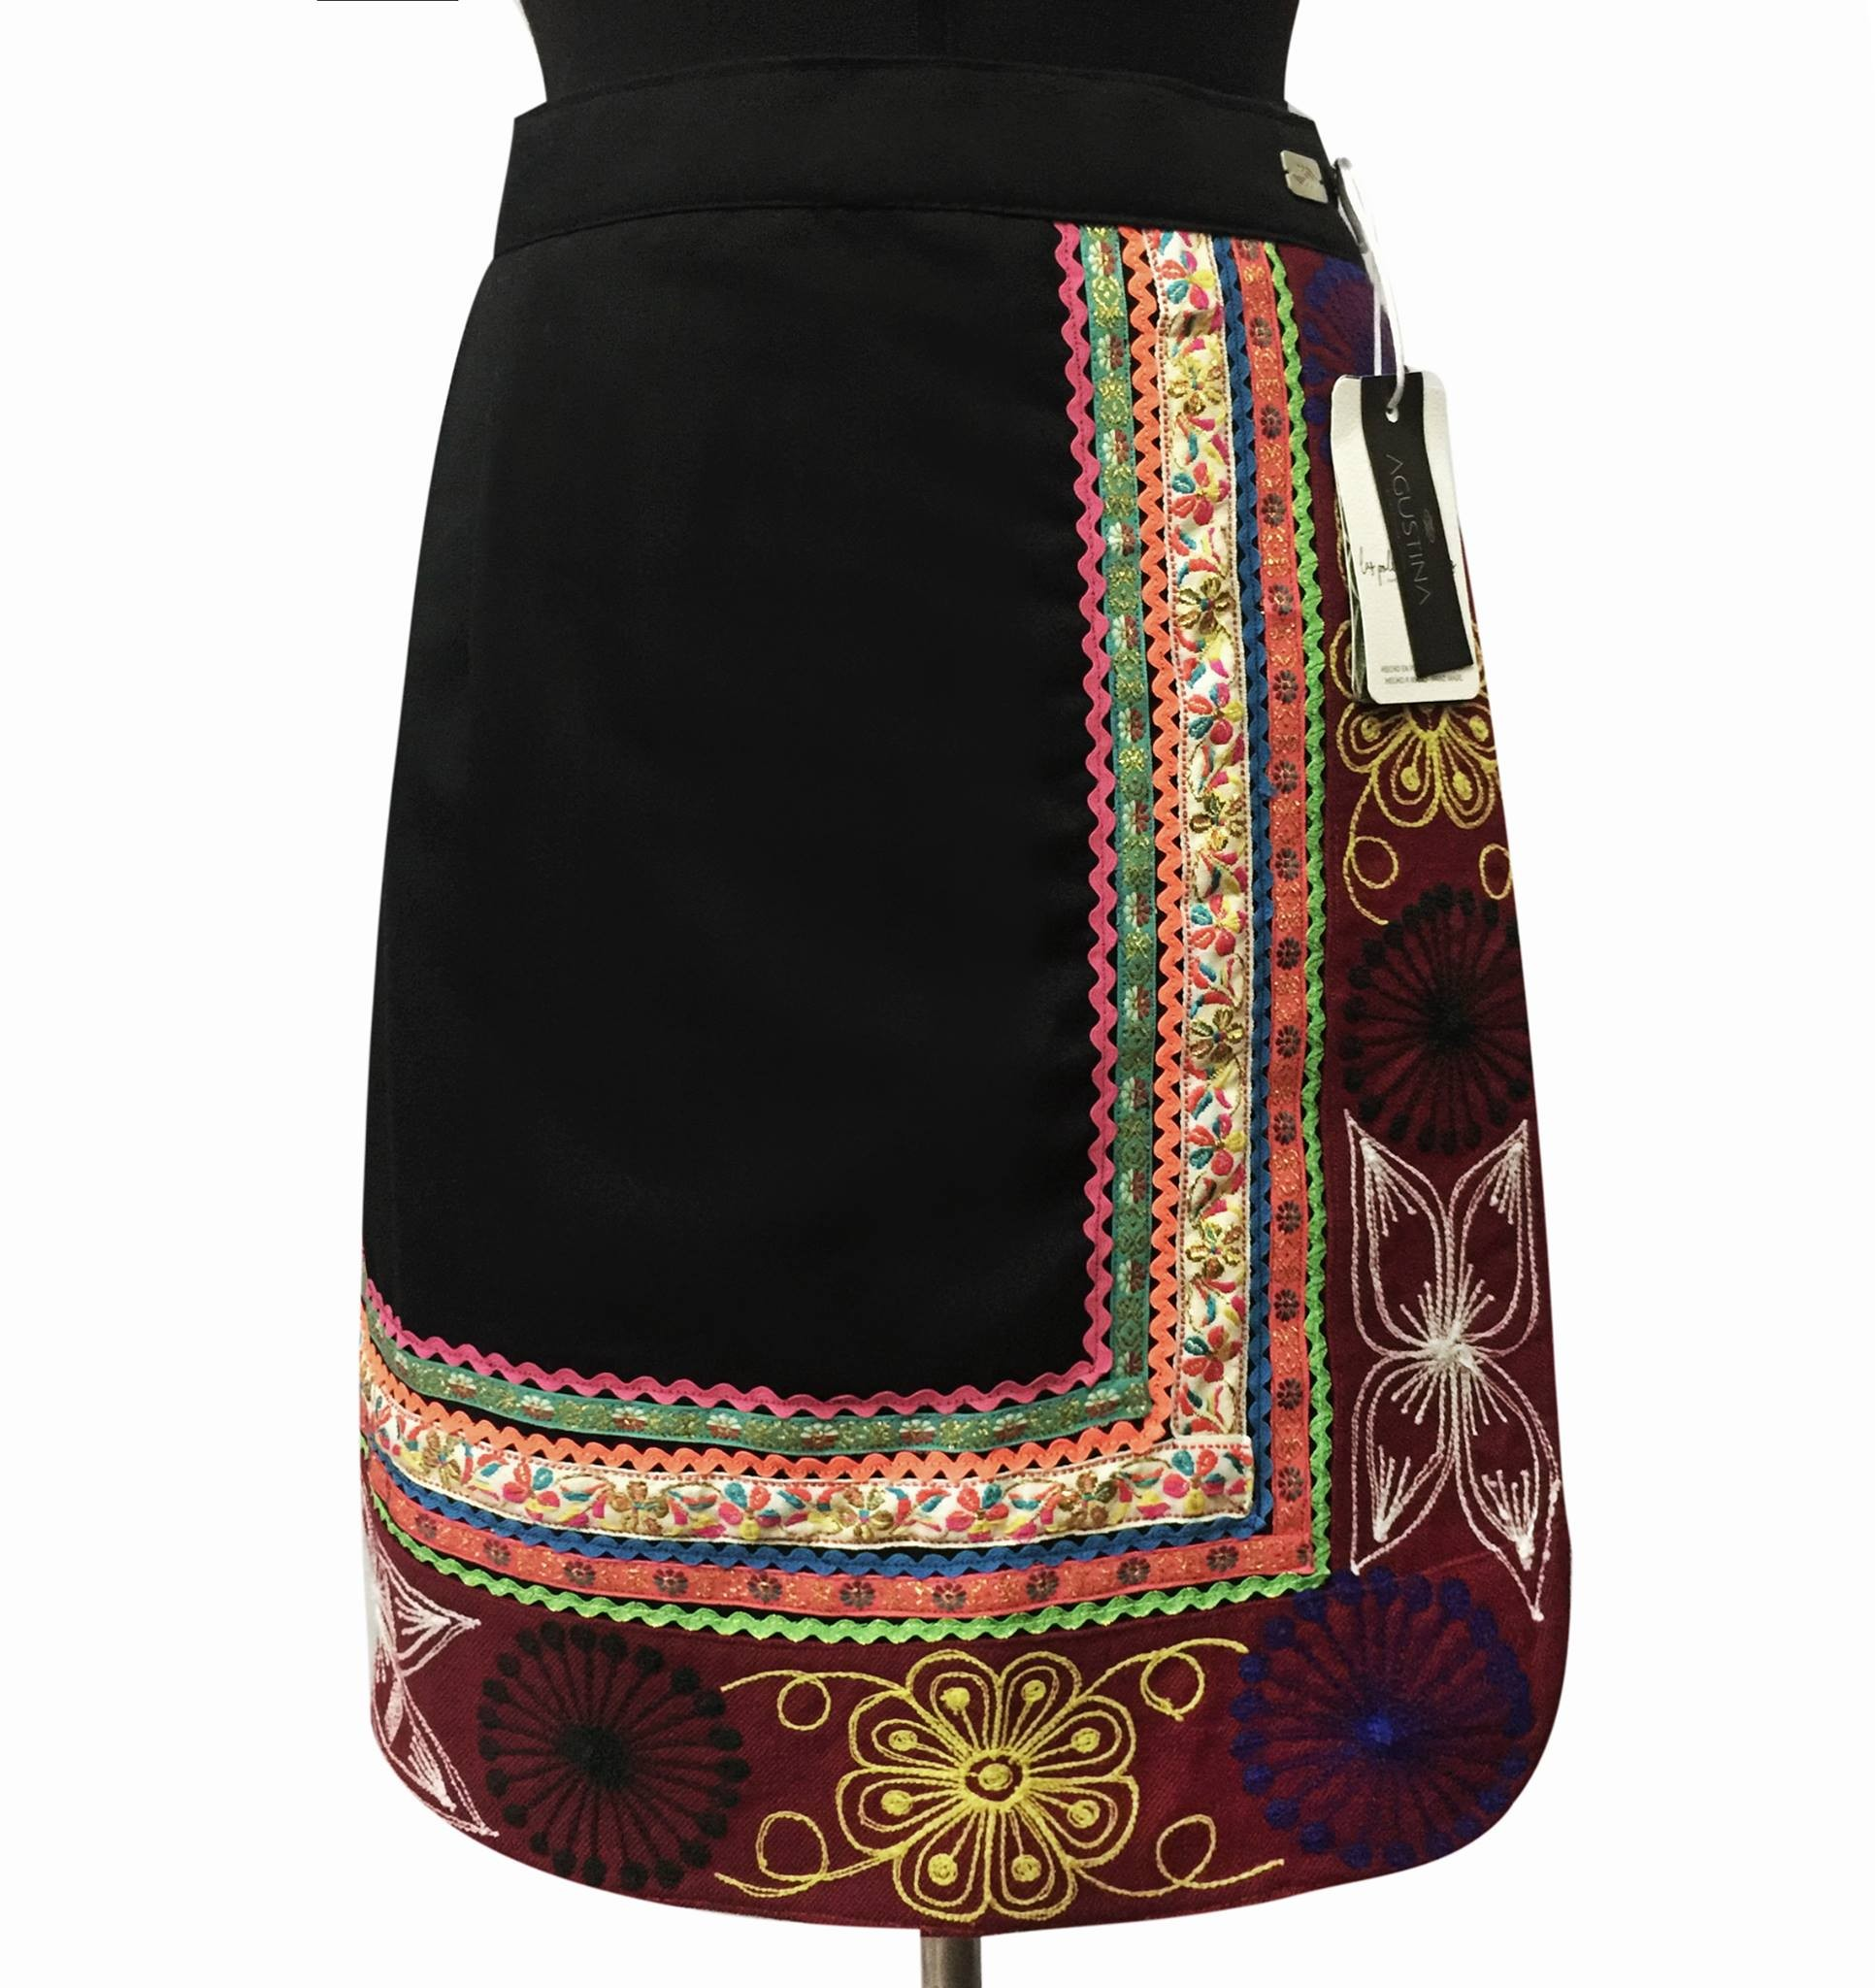 Quispicanchis Andean Skirt - Size M